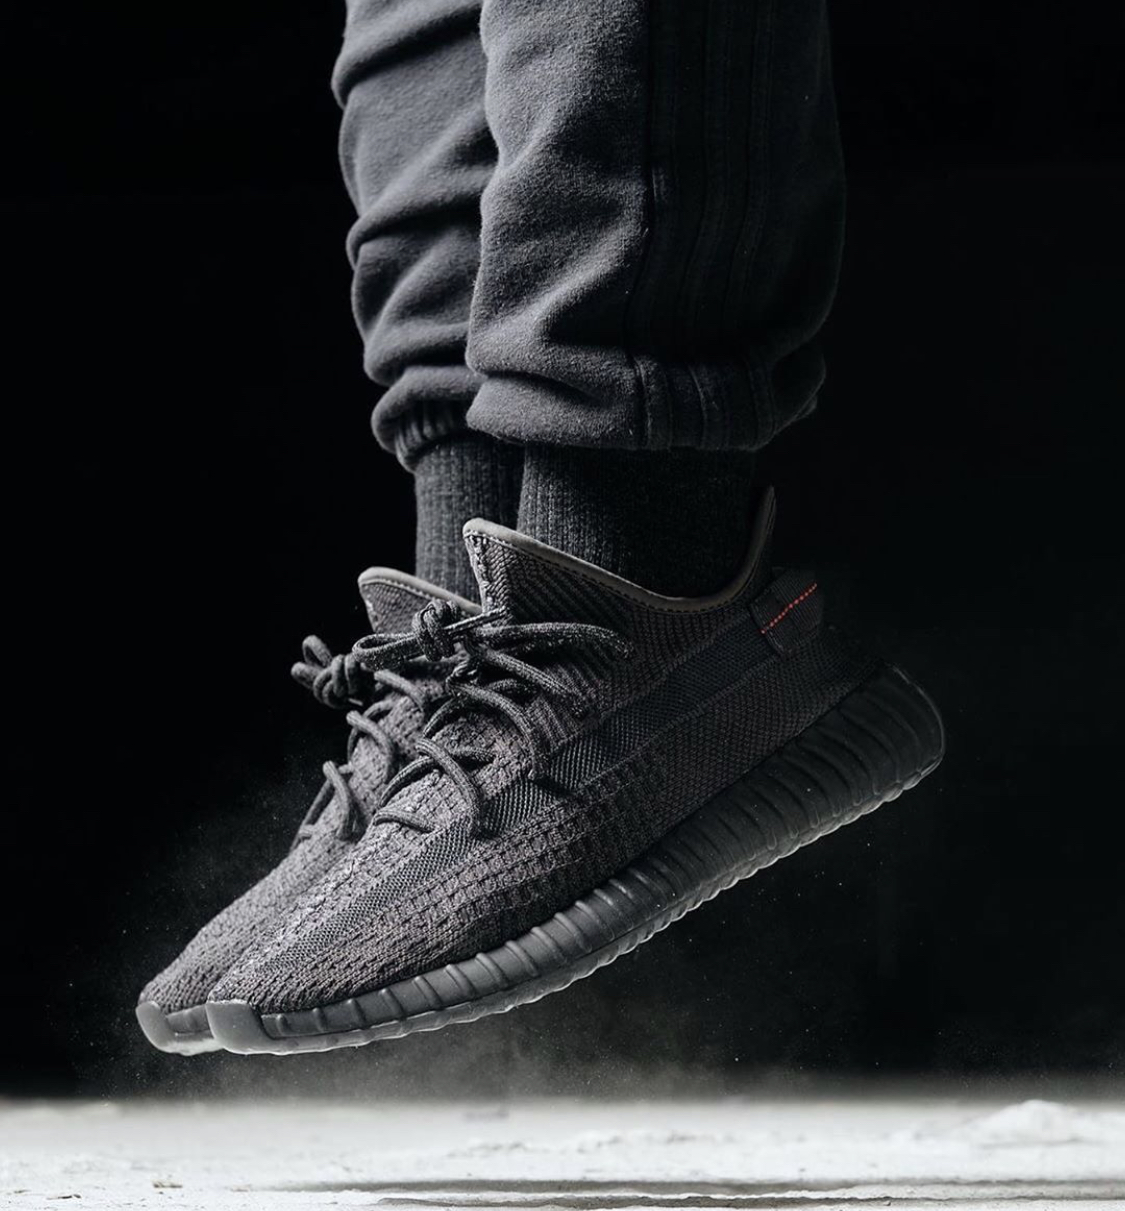 big sale 691ce 64713 Now Available: adidas Yeezy 350 V2